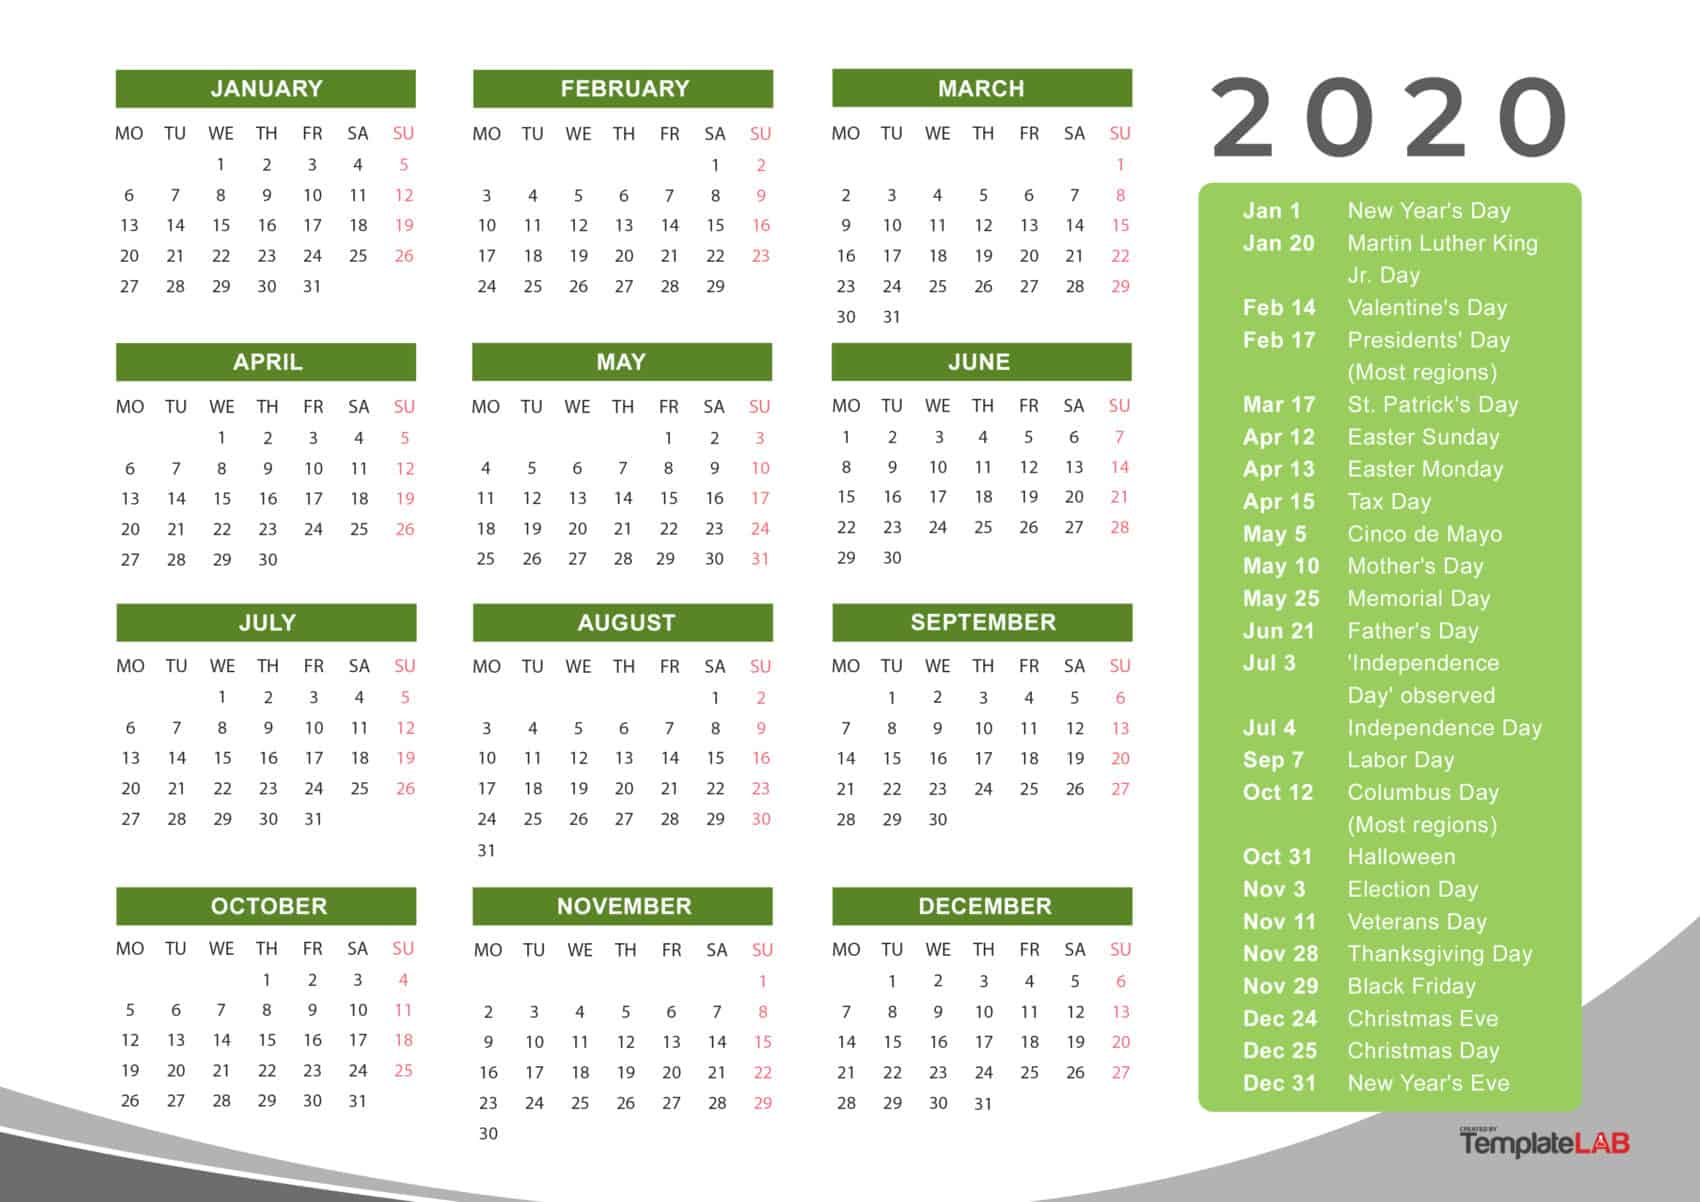 2020 Printable Calendars [Monthly, With Holidays, Yearly] ᐅ with regard to 2020 Calendar With Holidays Printable Free